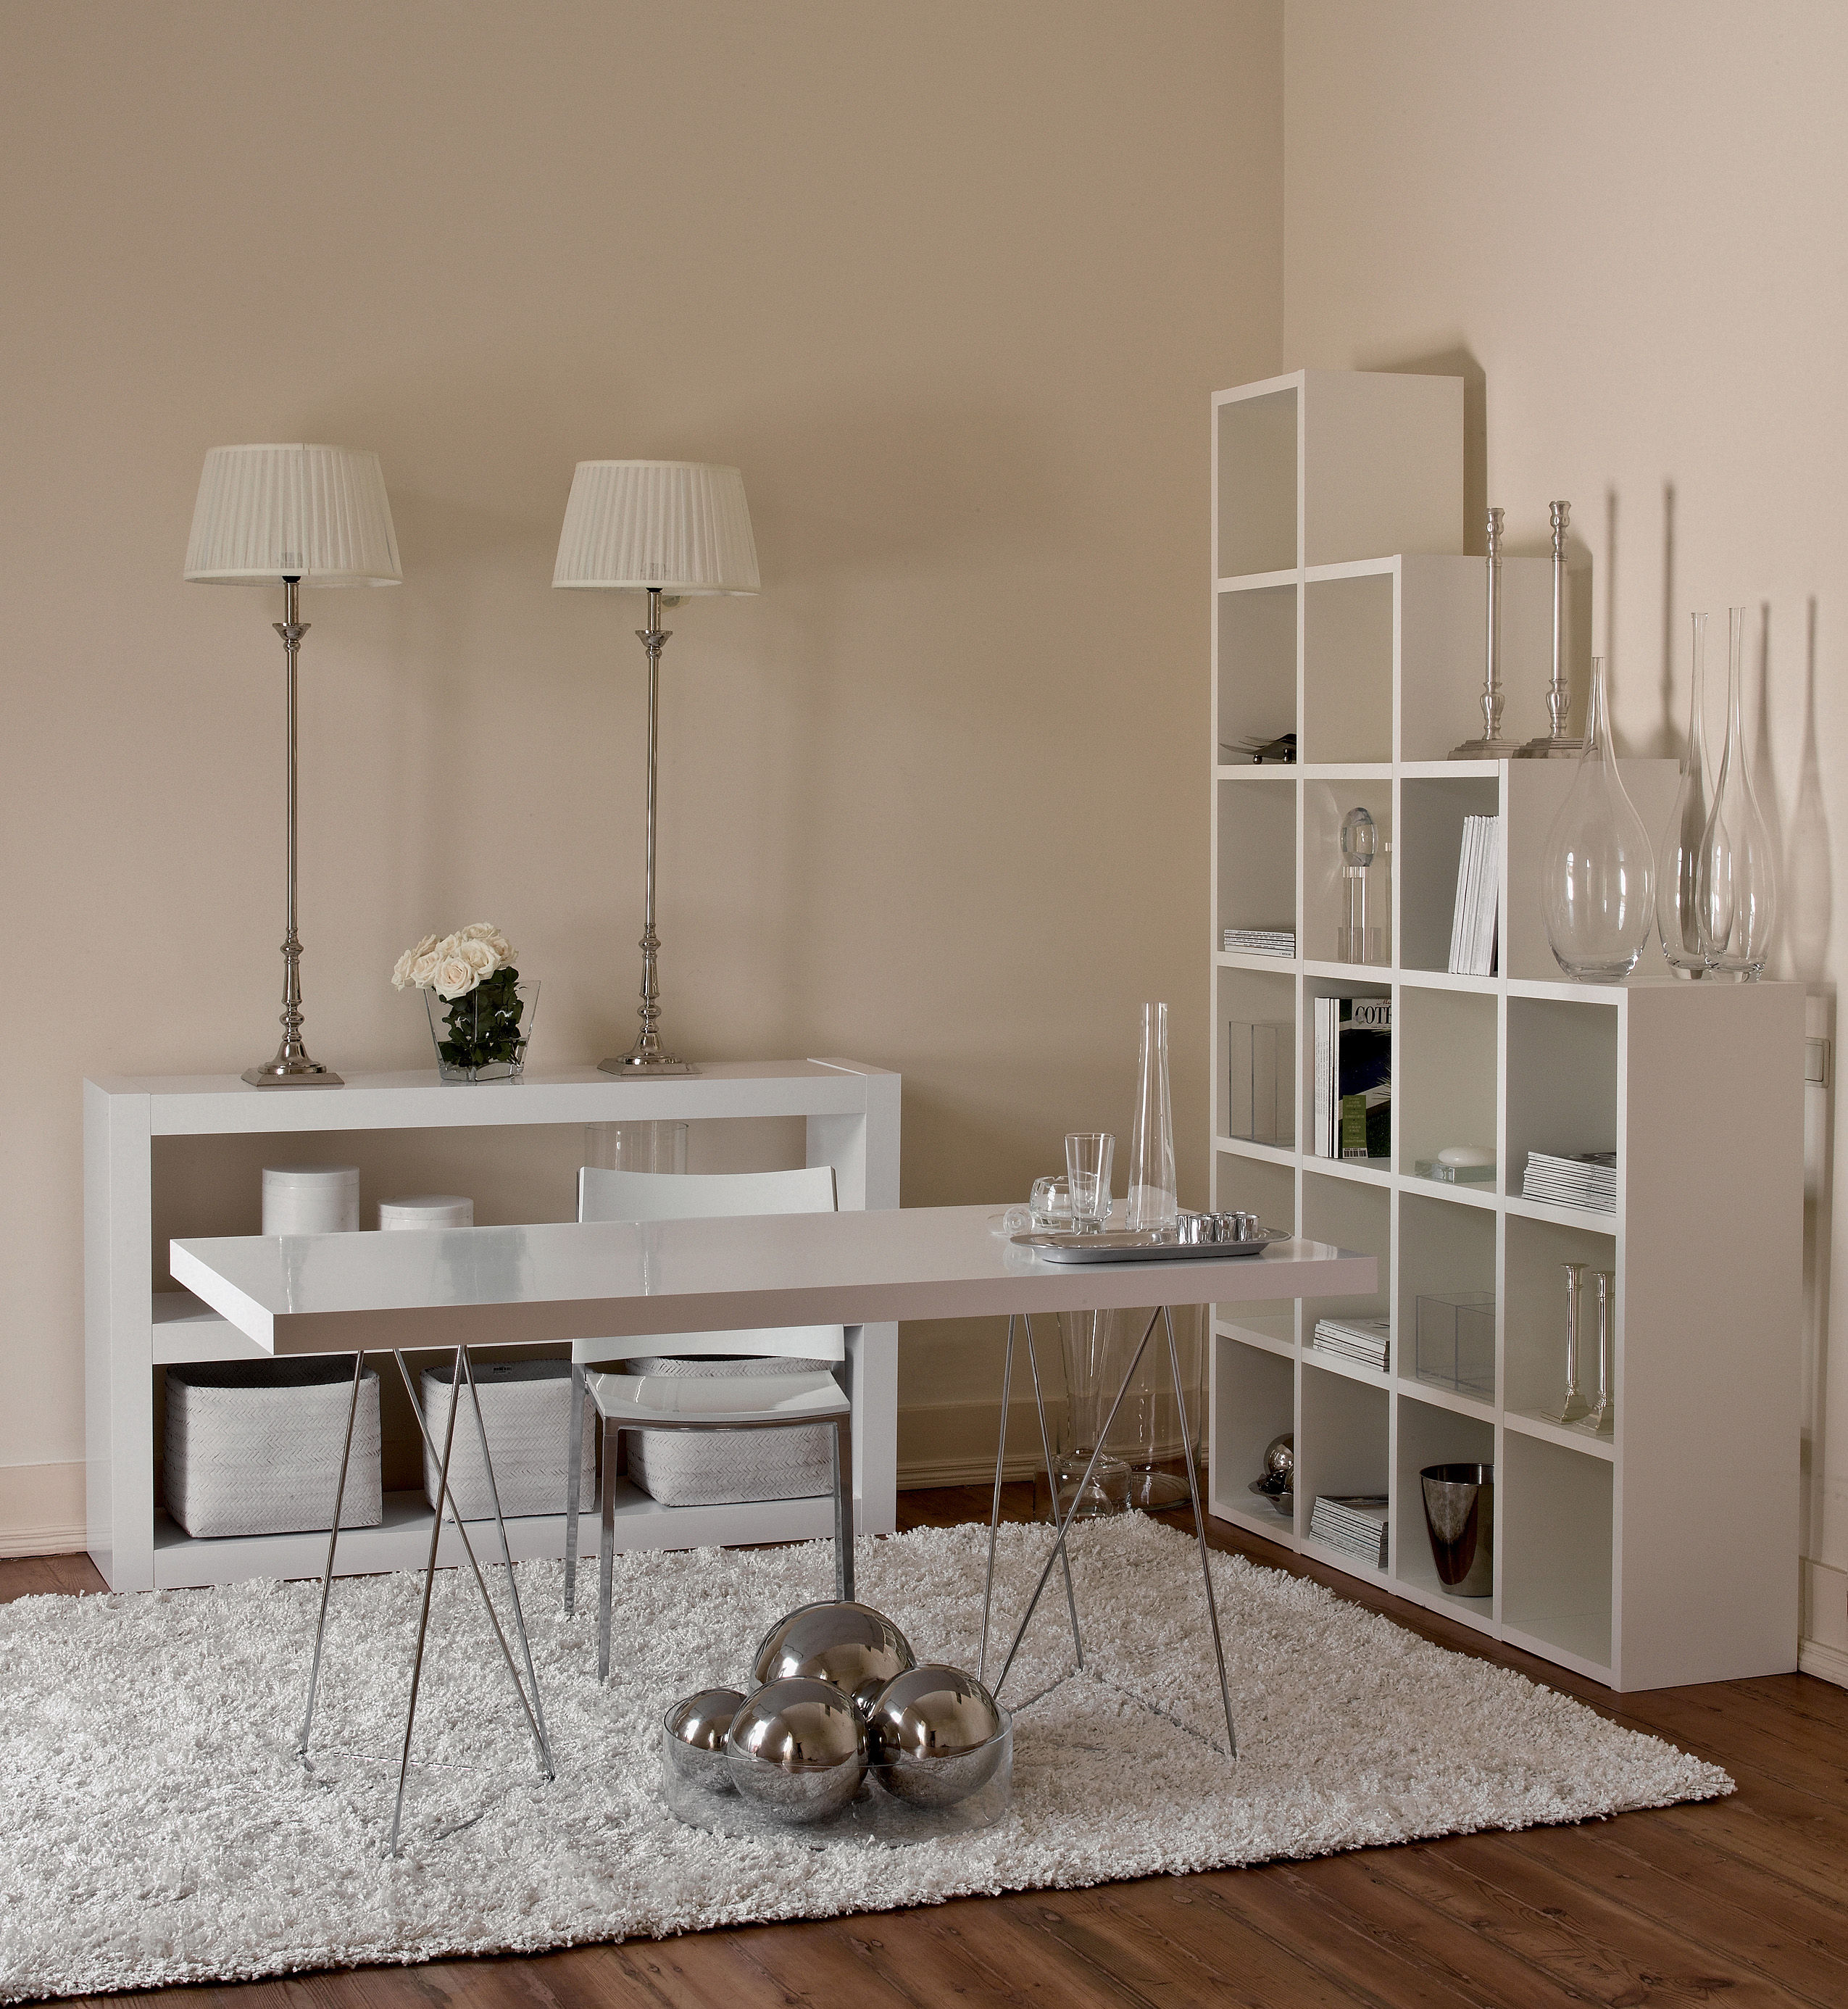 table trestle l 180 cm blanc pied chrom pop up home. Black Bedroom Furniture Sets. Home Design Ideas